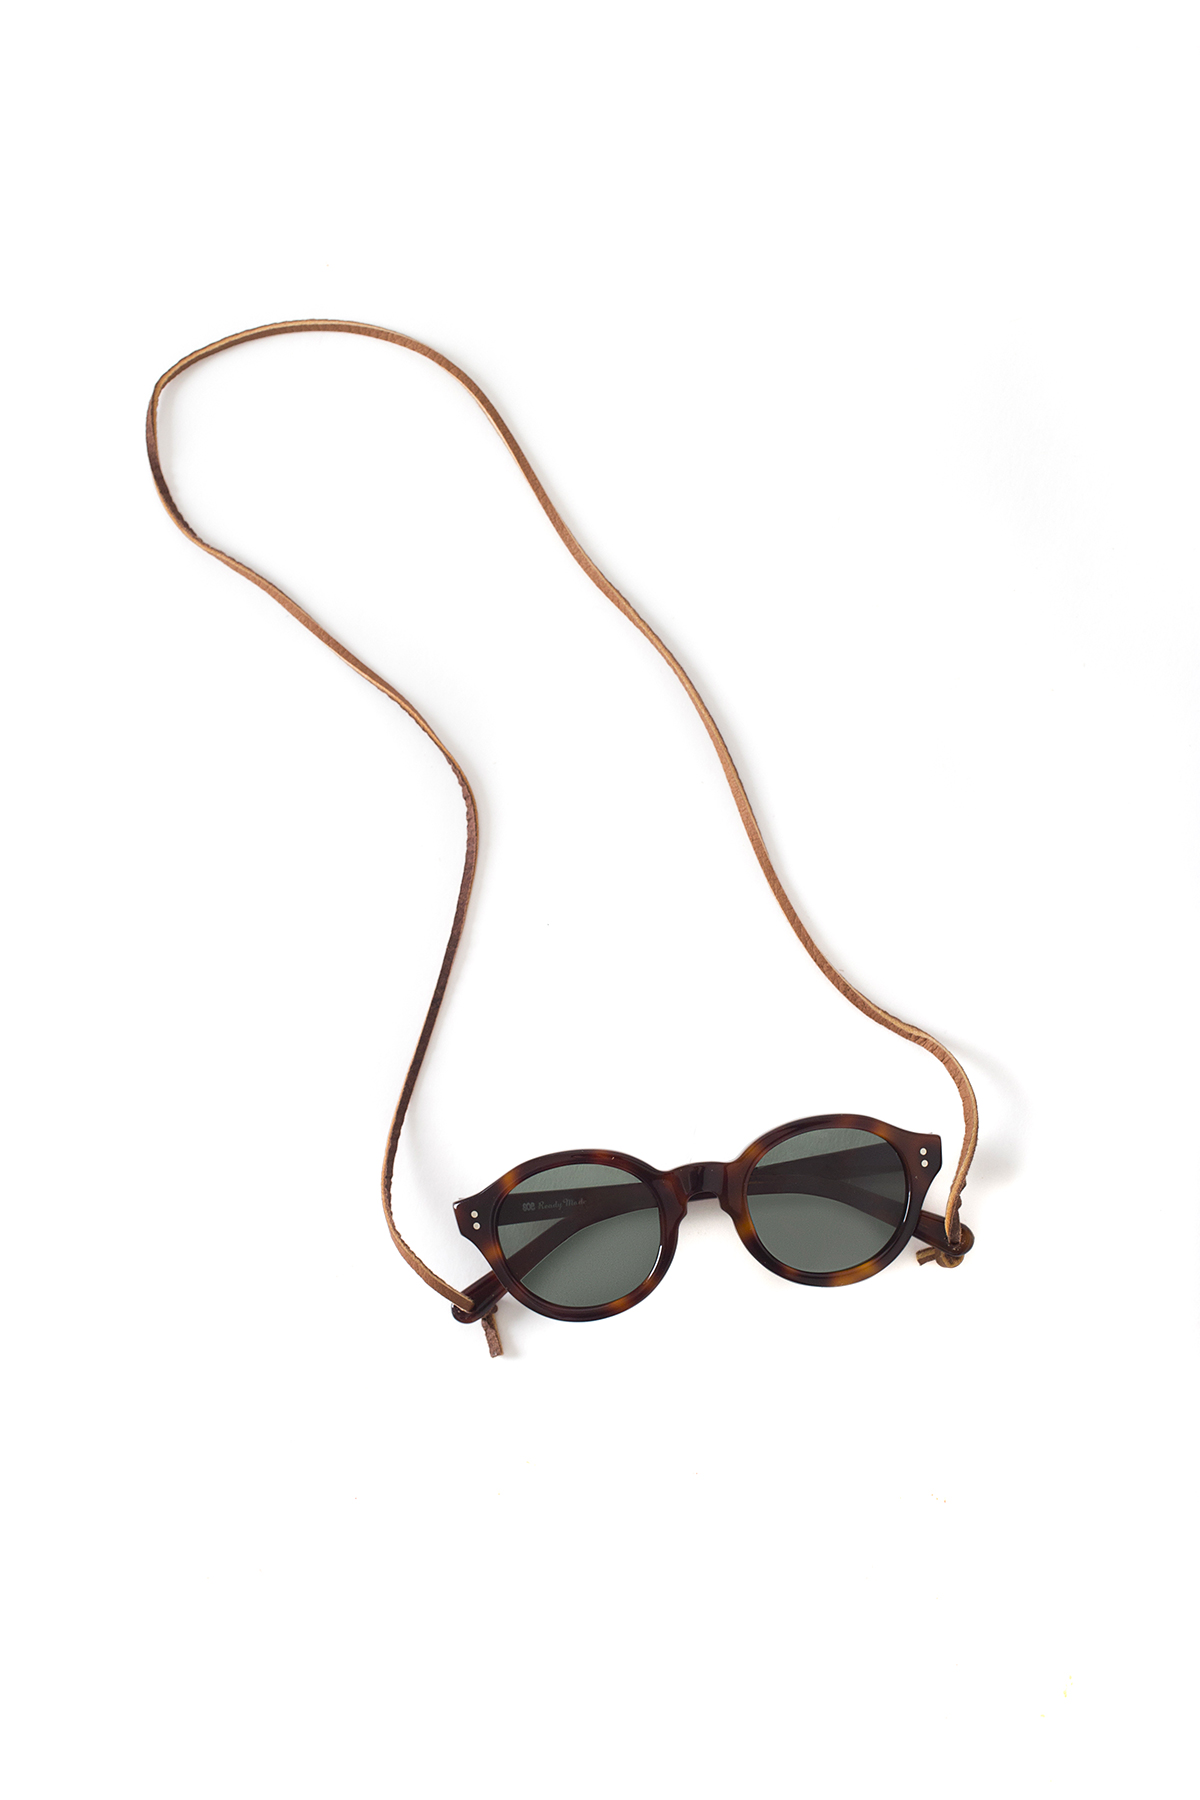 soe : Sunglasses With Leather Holder (Brown)